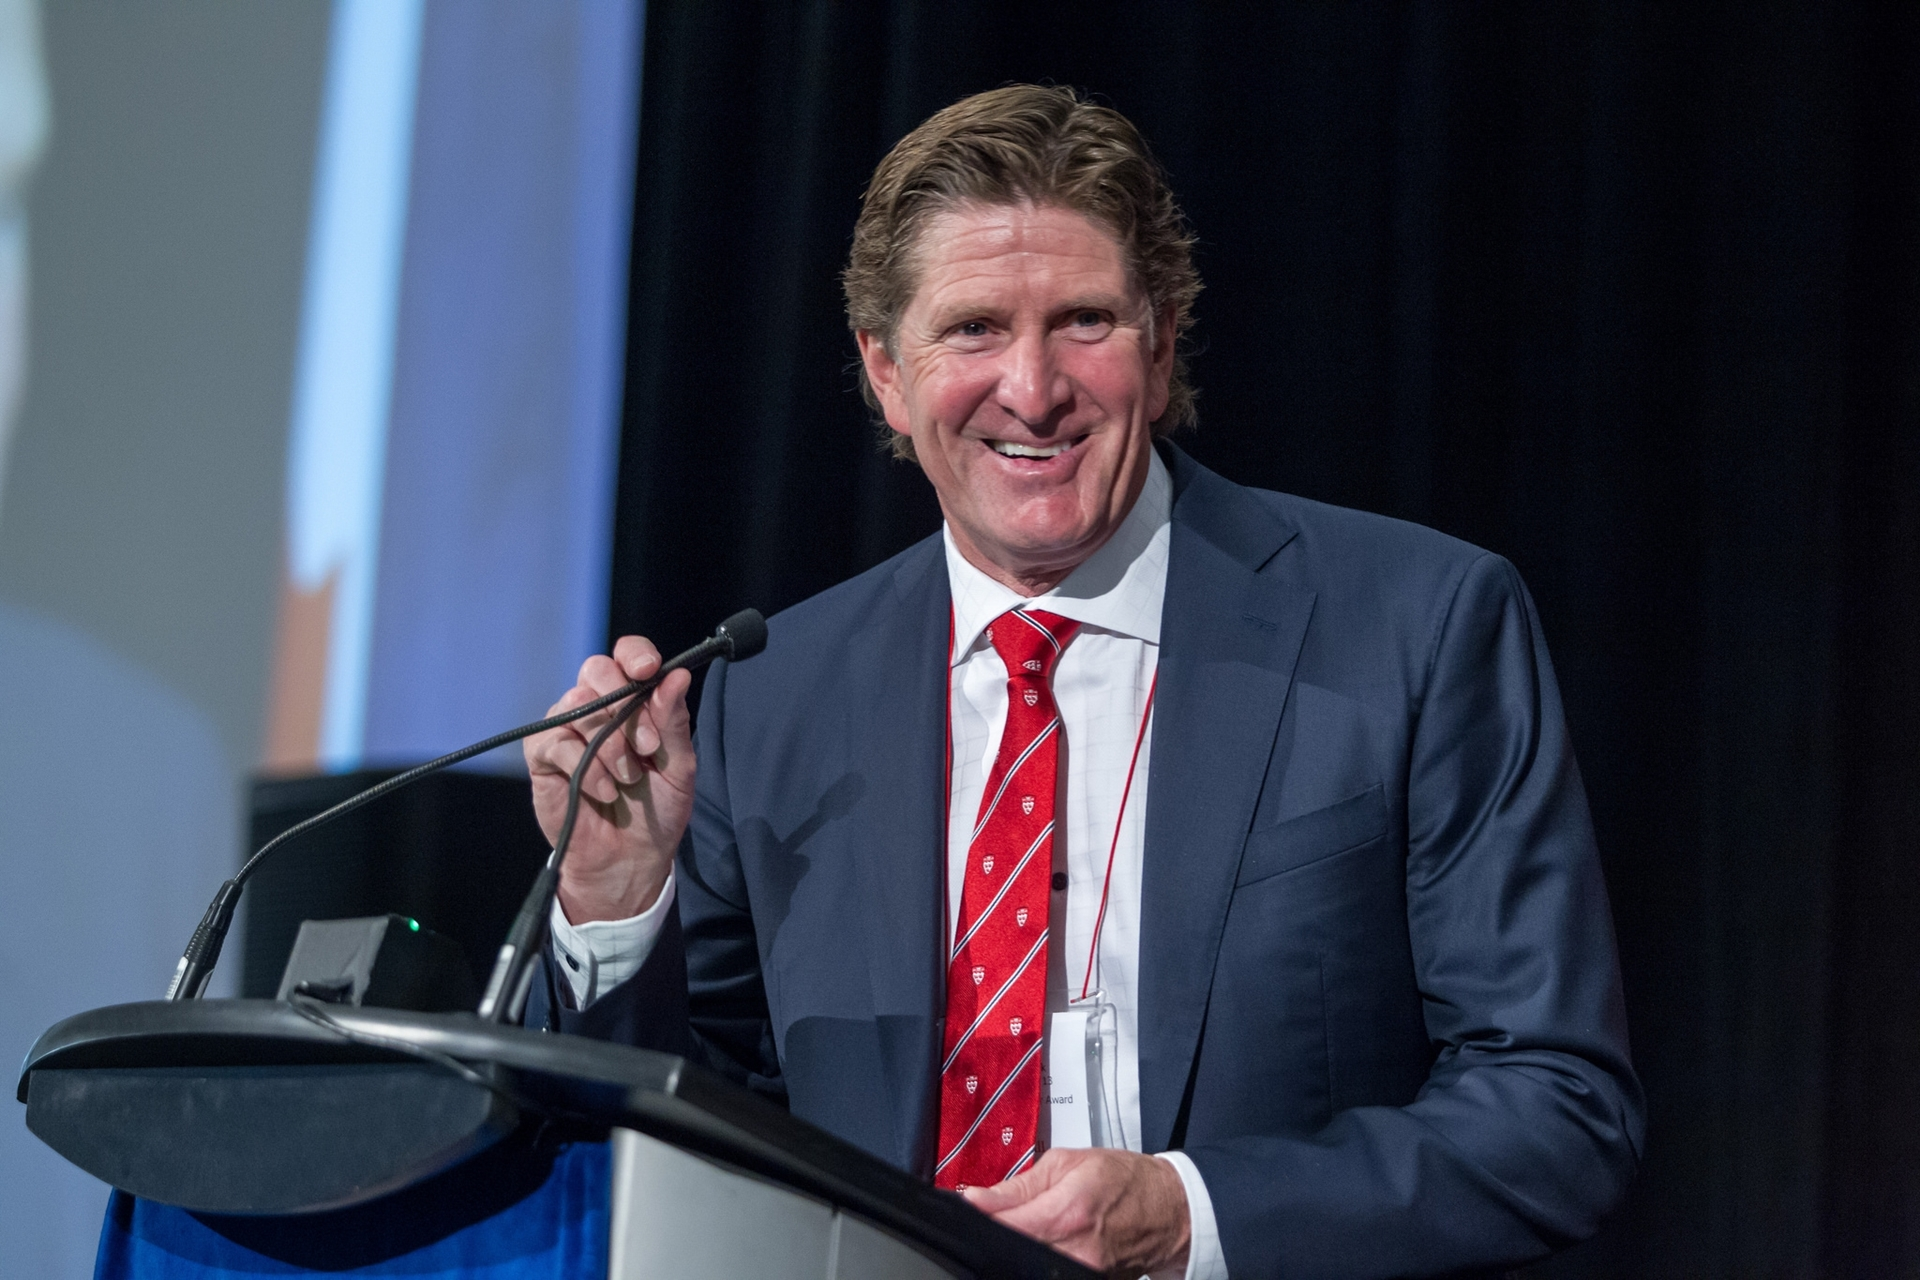 Mike Babcock receives leadership award at McGill Toronto Excellence Luncheon